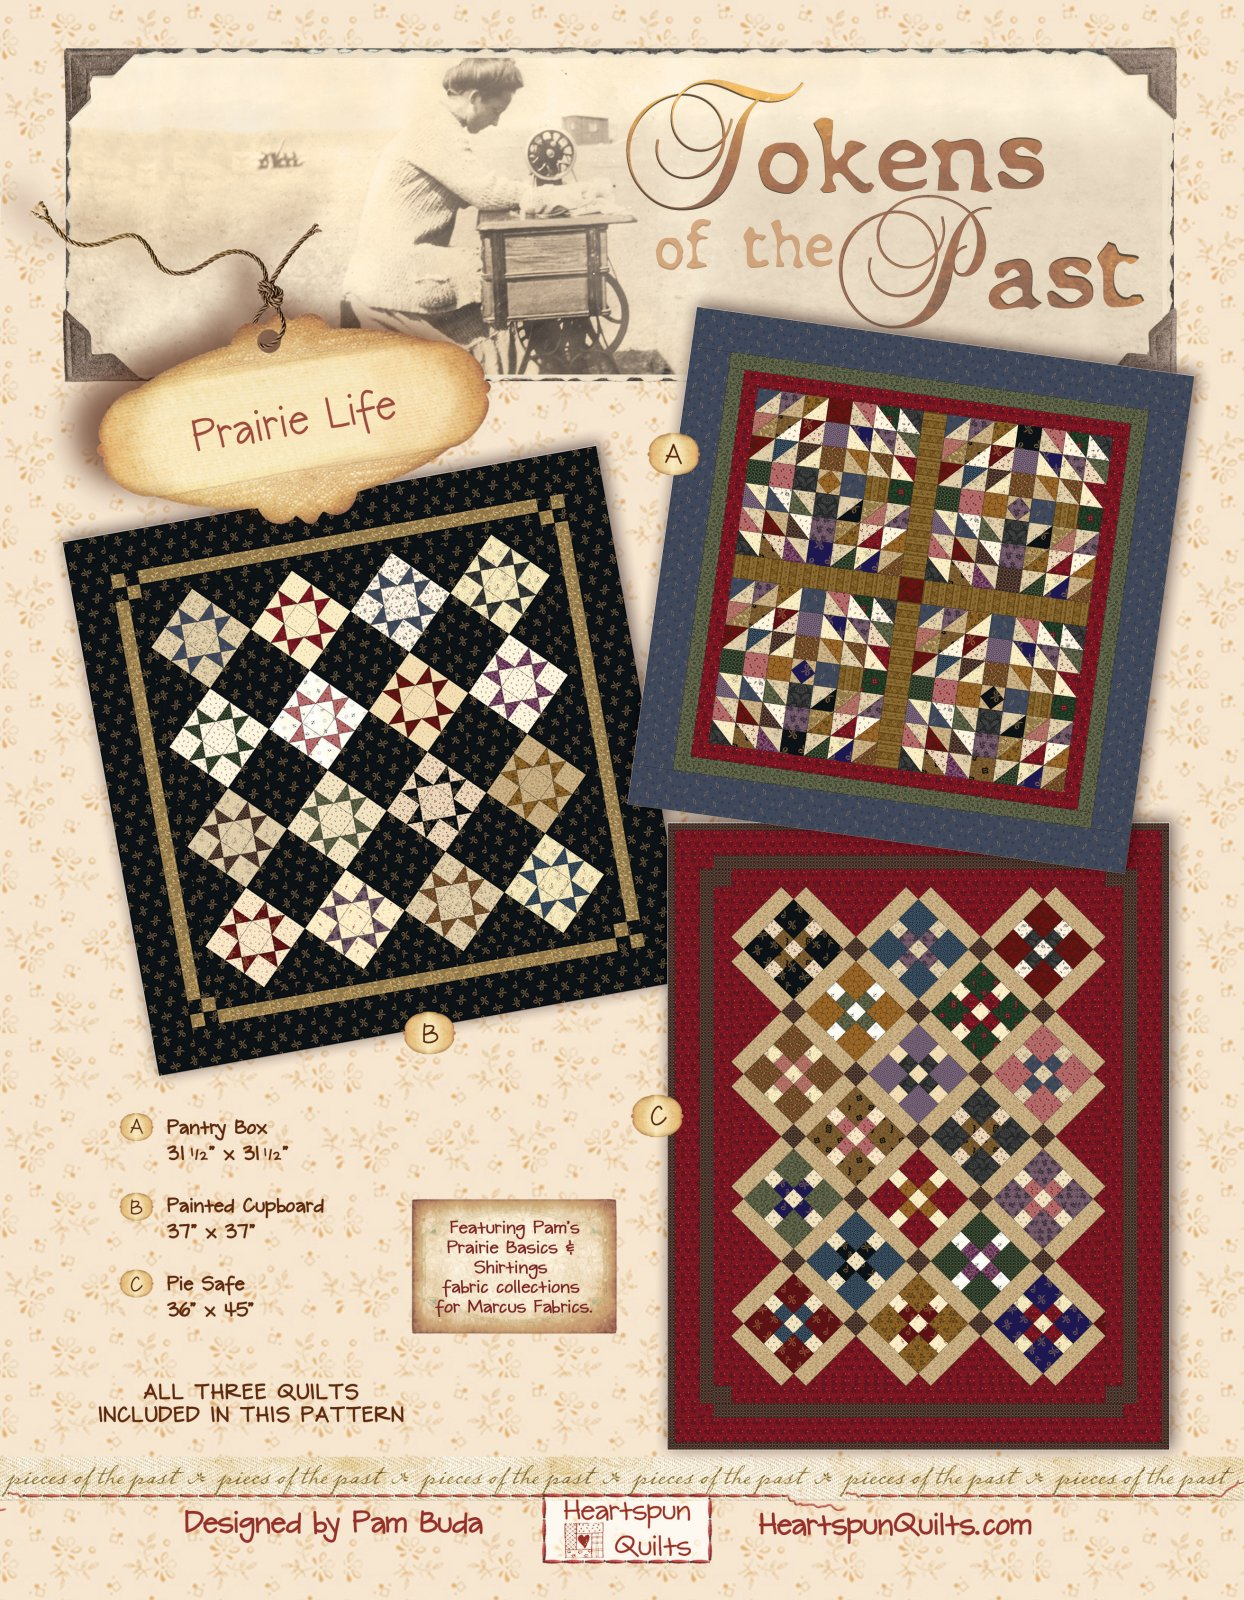 Tokens of the Past: Prairie Life Pattern